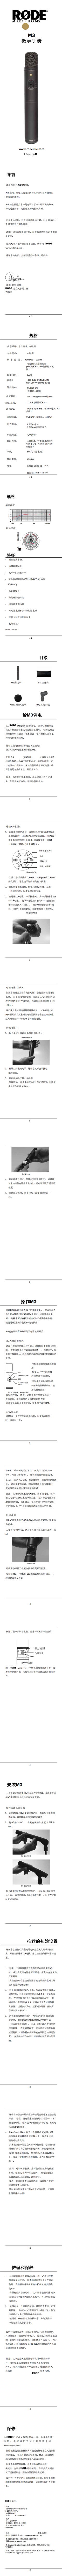 M3_product_manual_1_16_translate Chinese_0.png